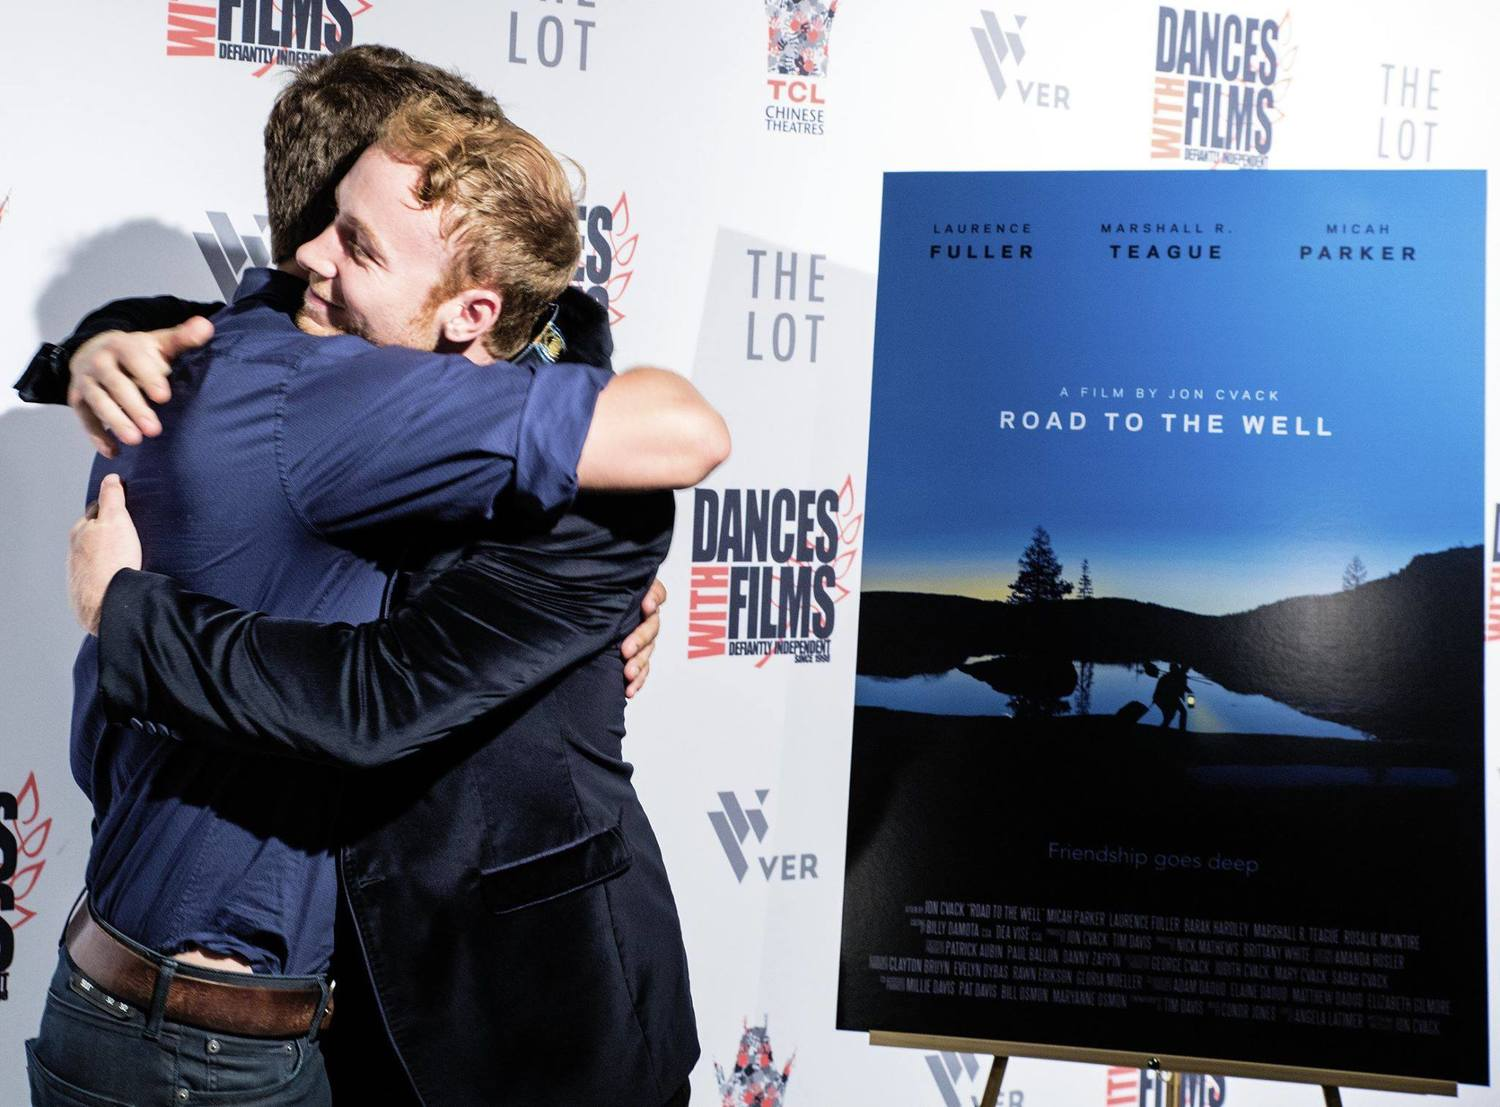 Jon Cvack & Laurence Fuller at the Dances With Films premiere of Road To The Well